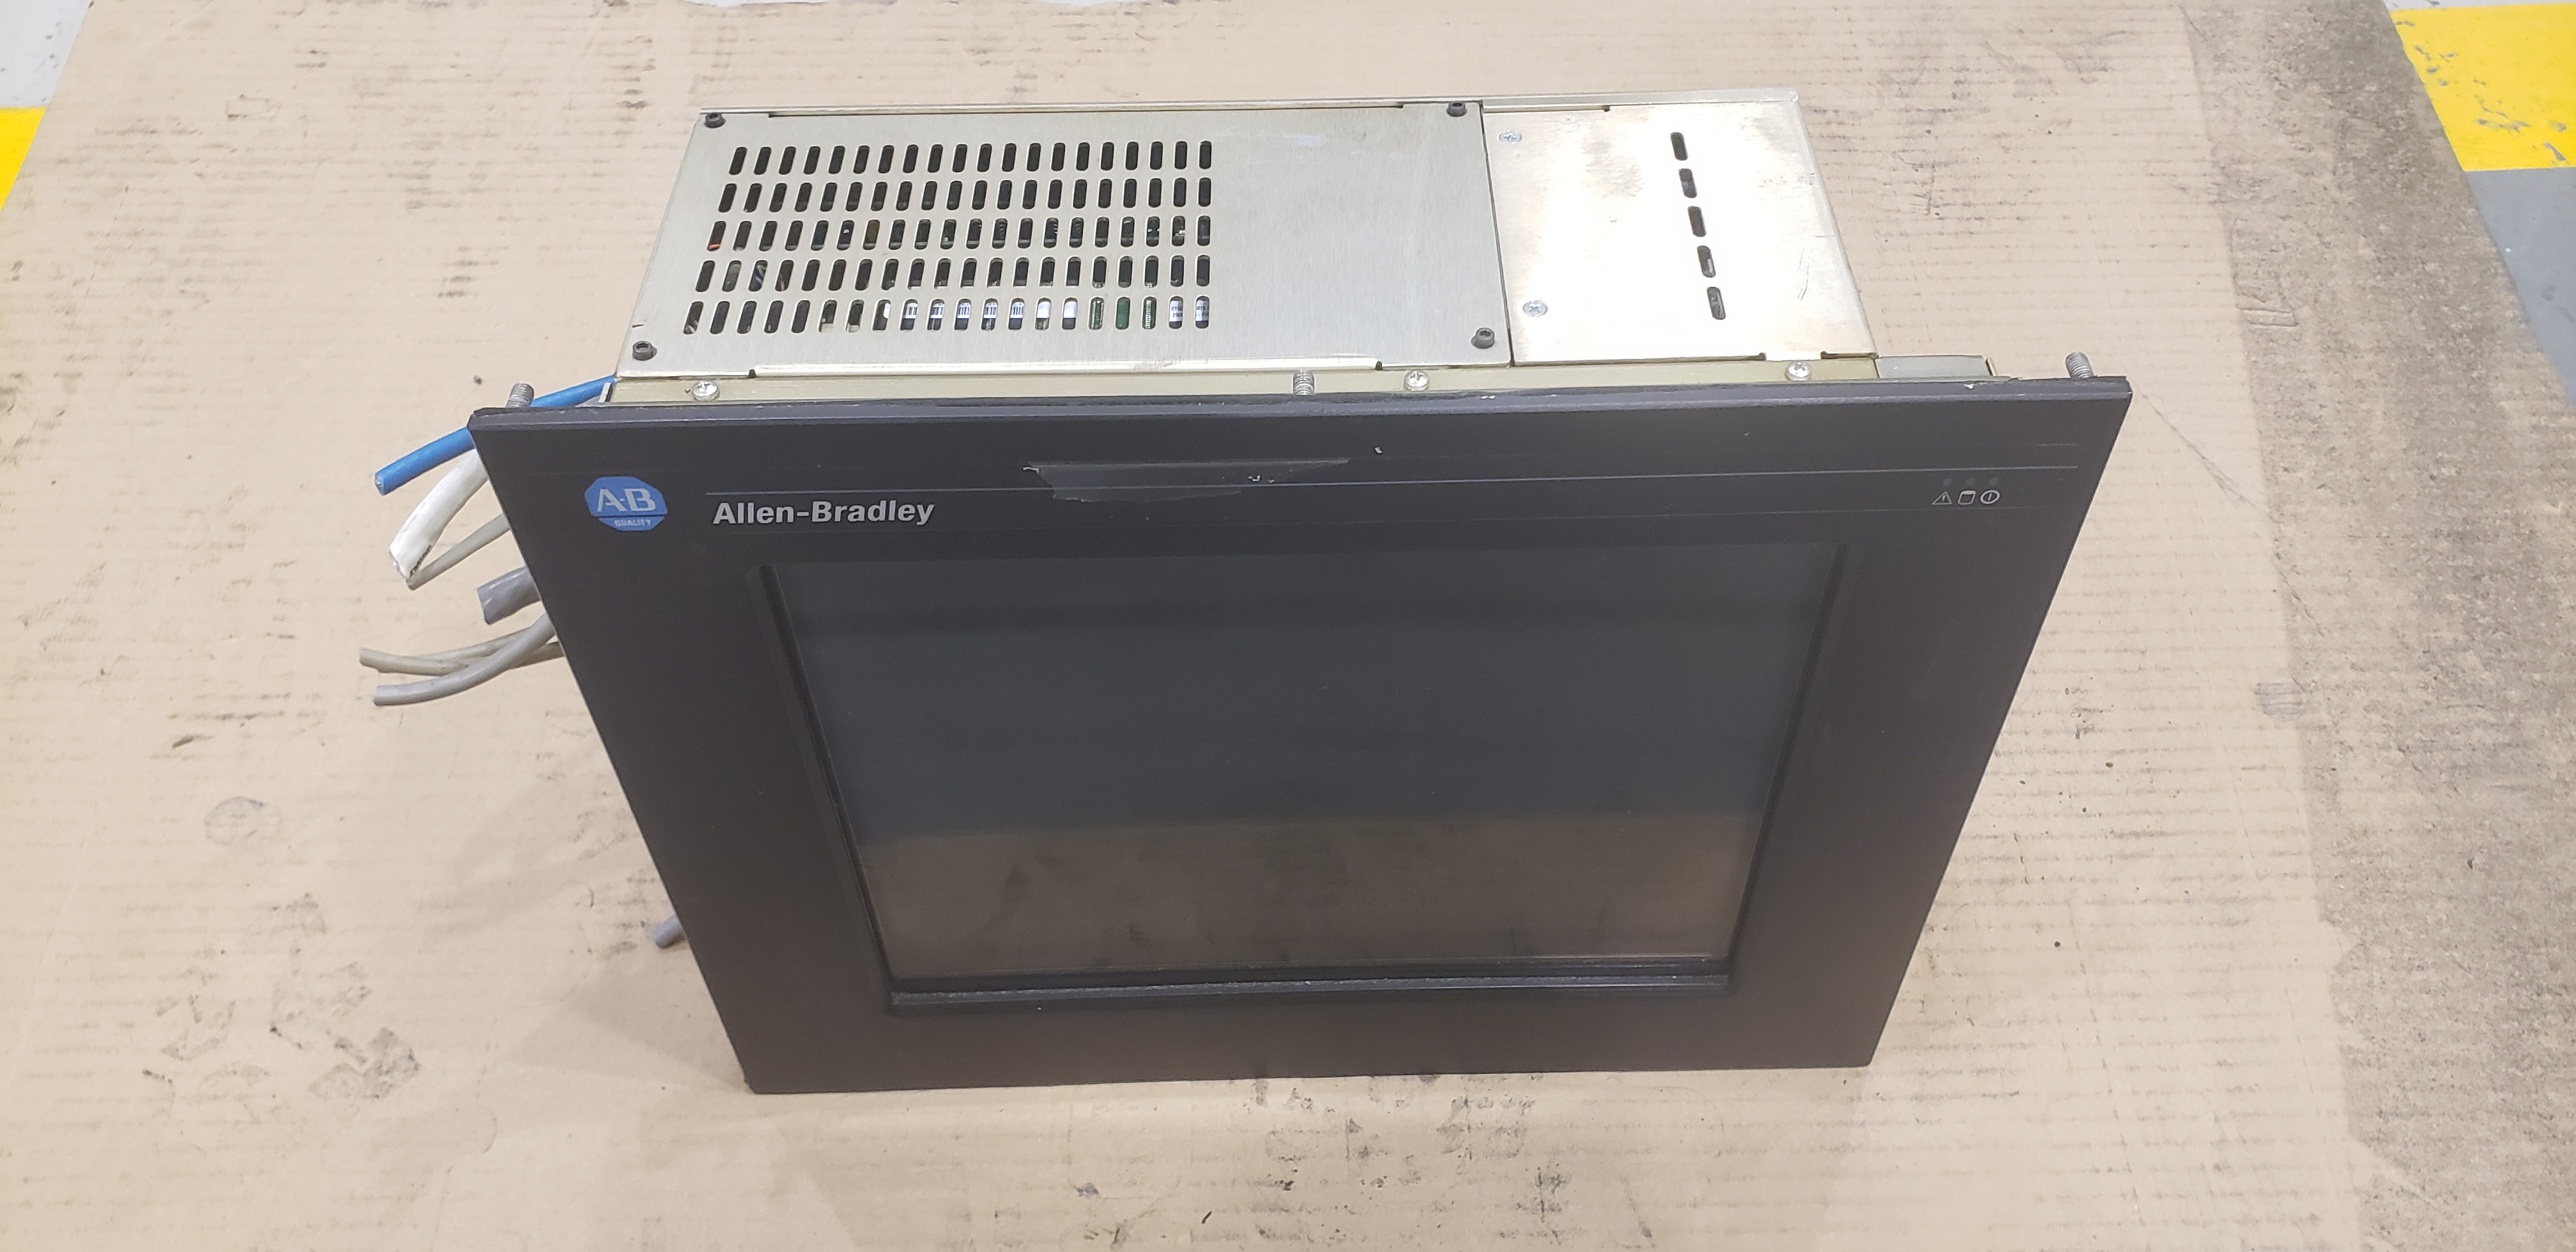 Allen-Bradley VersaView 1200P Display Panel / Computer 6181P-12N